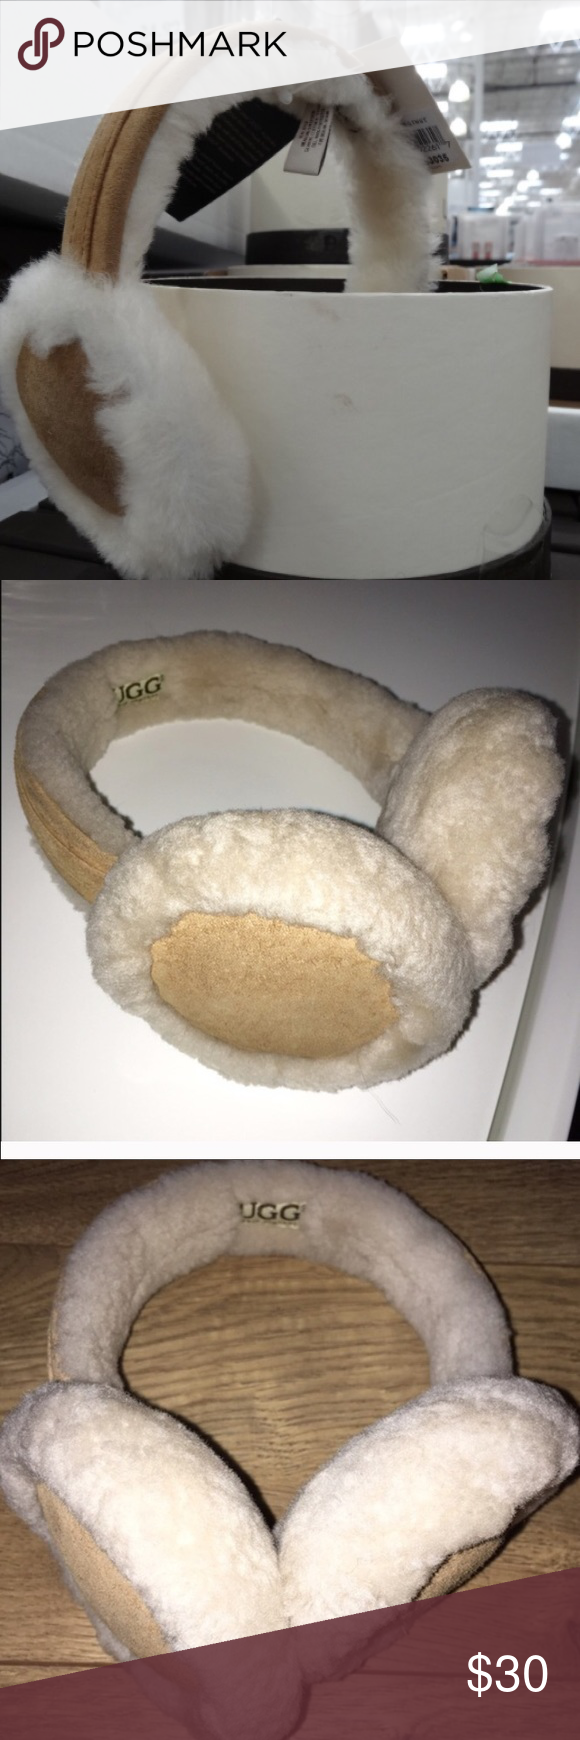 UGG EARMUFFS super cute only worn handful of times great condition UGG Accessories